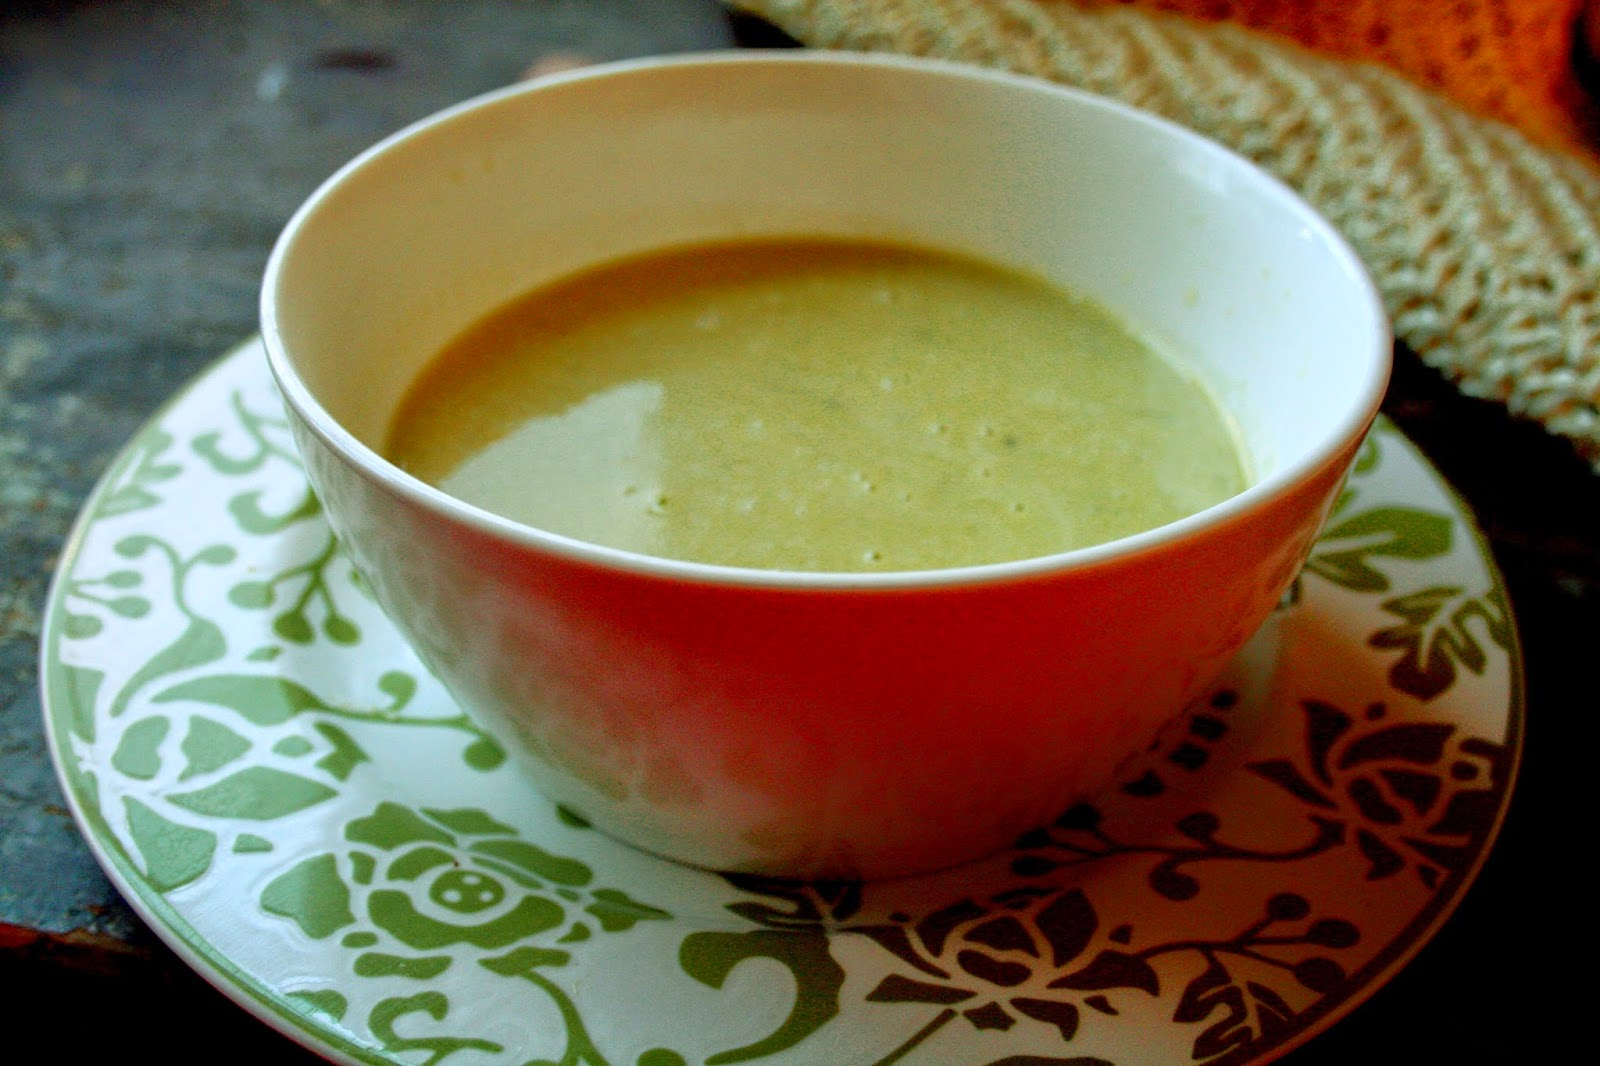 24/7 Low Carb Diner: Cream of Asparagus Soup